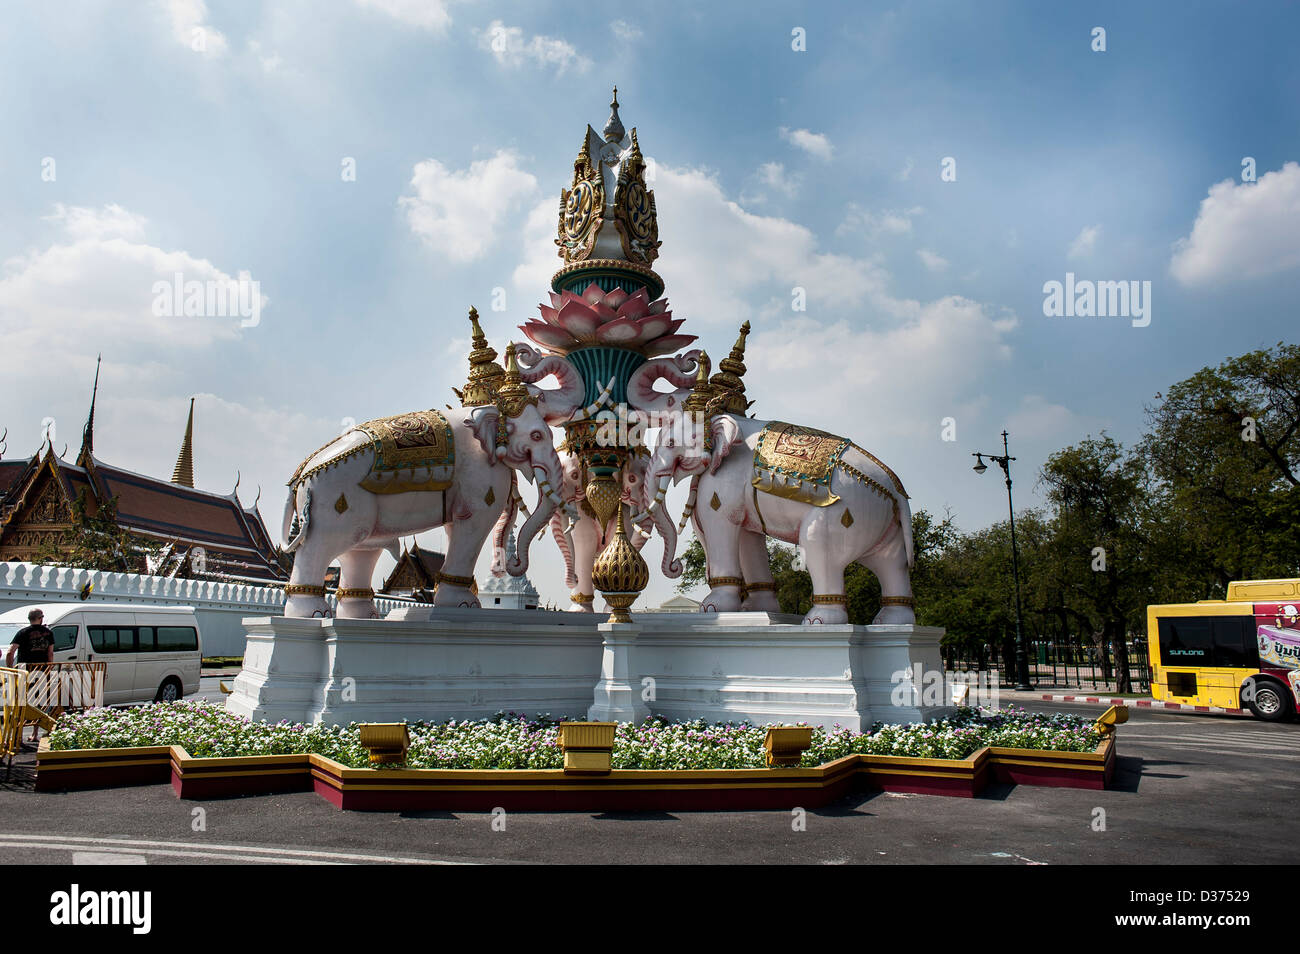 Shots For Thailand >> Thailand On The 27th Of December Stock Photos Thailand On The 27th